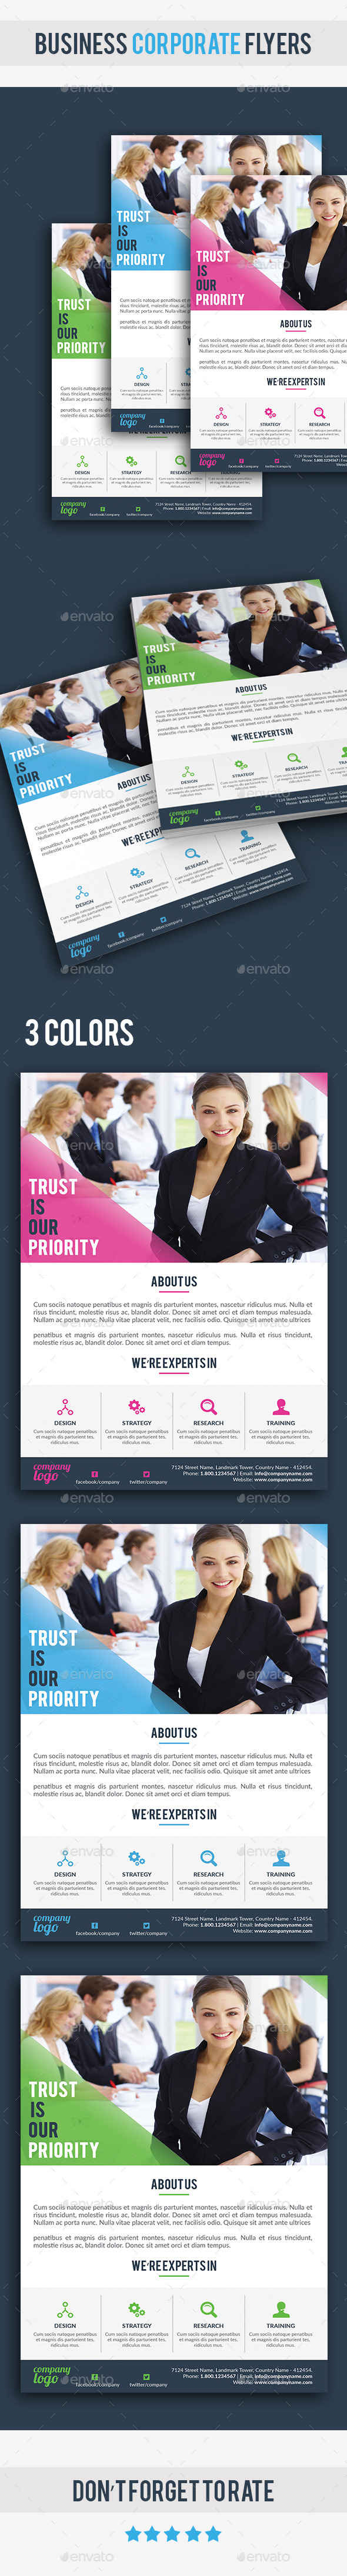 GraphicRiver Business Corporate Flyer 10798893